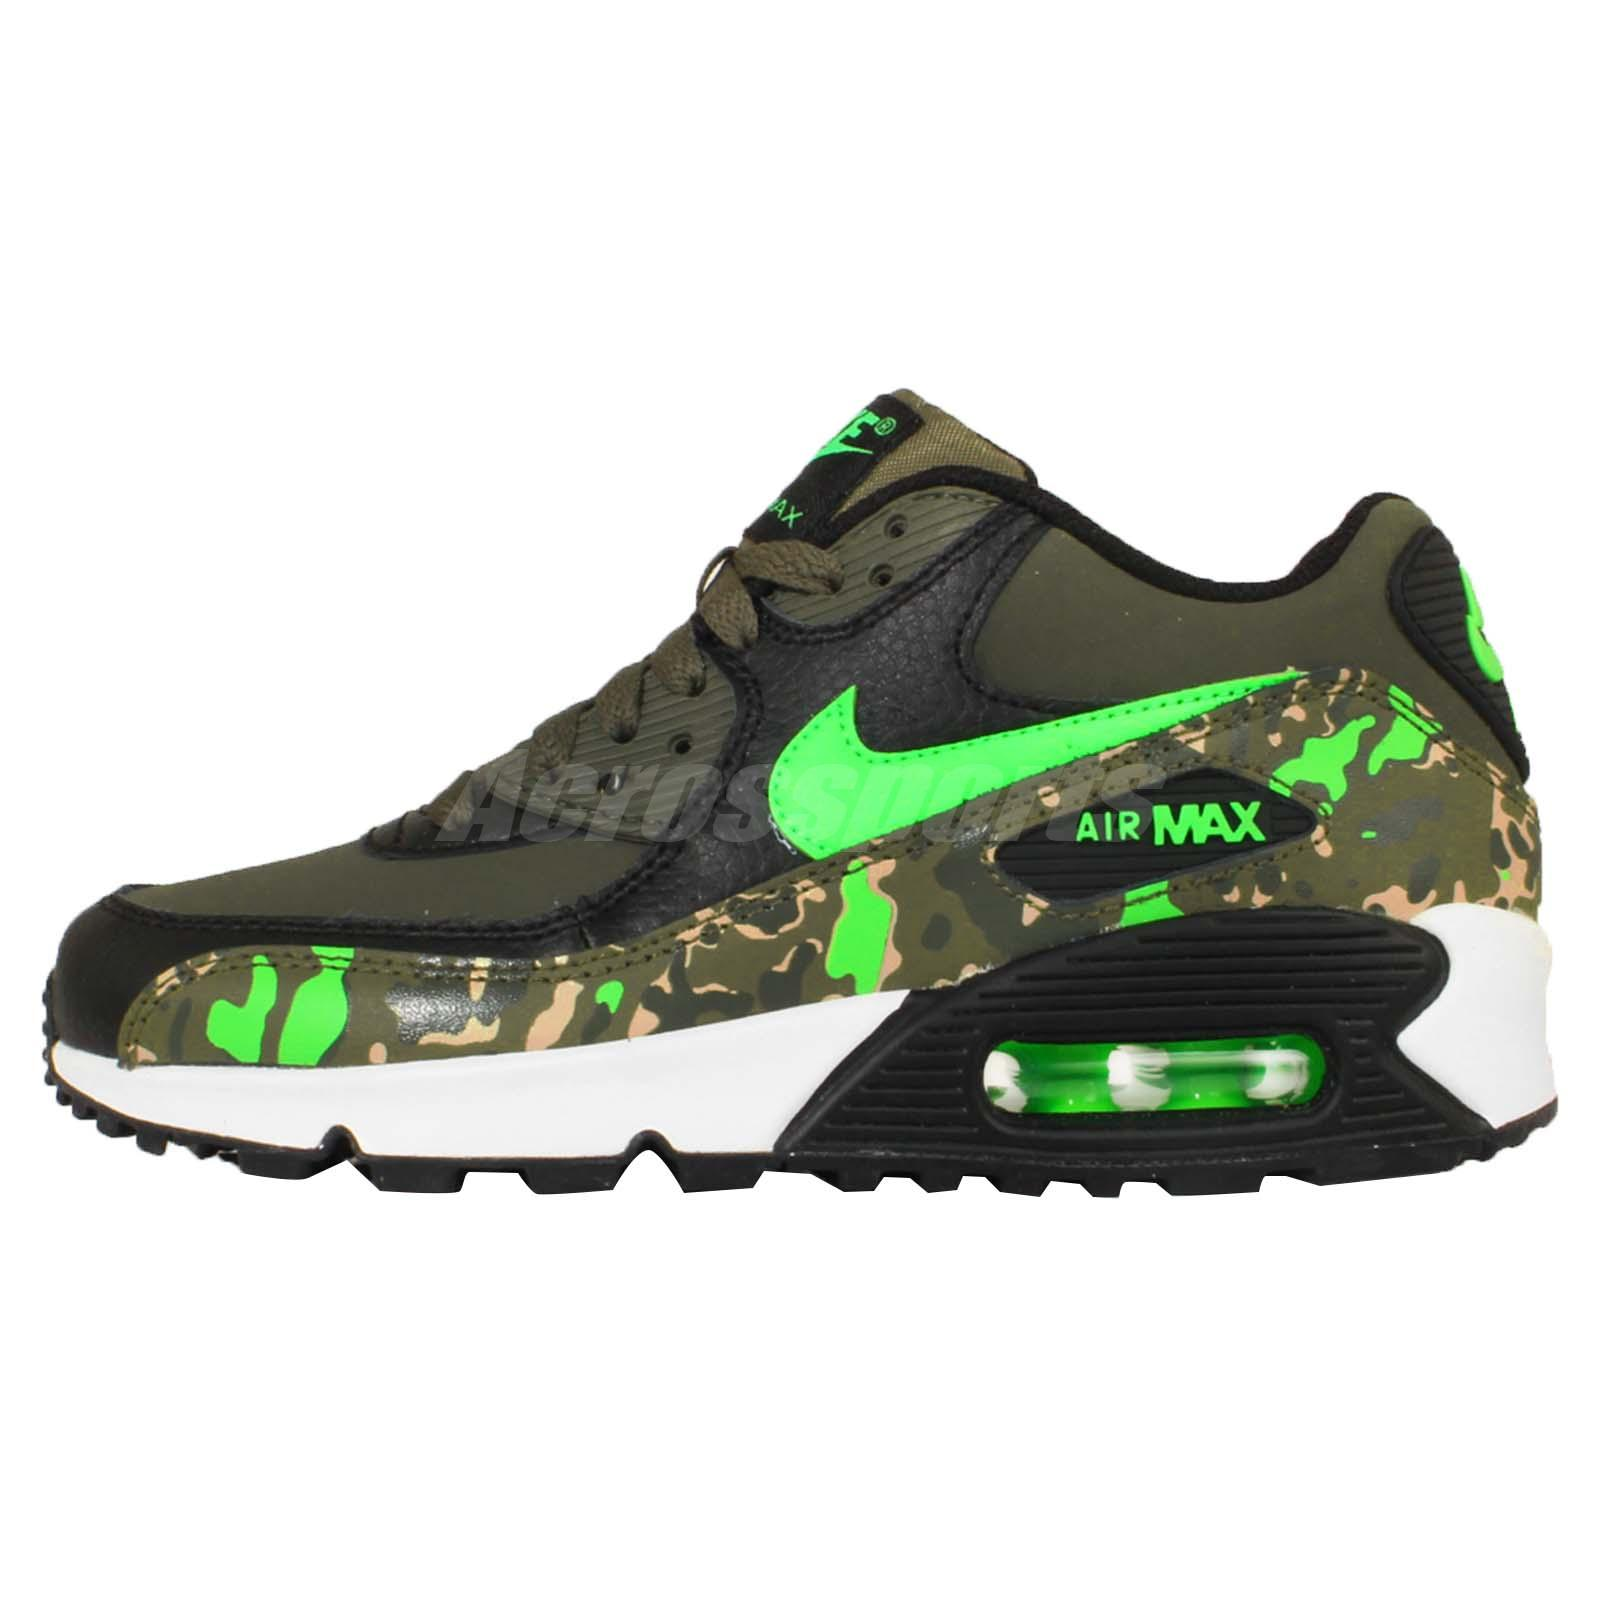 nike air max 90 prem ltr gs green camo youth boys girls. Black Bedroom Furniture Sets. Home Design Ideas